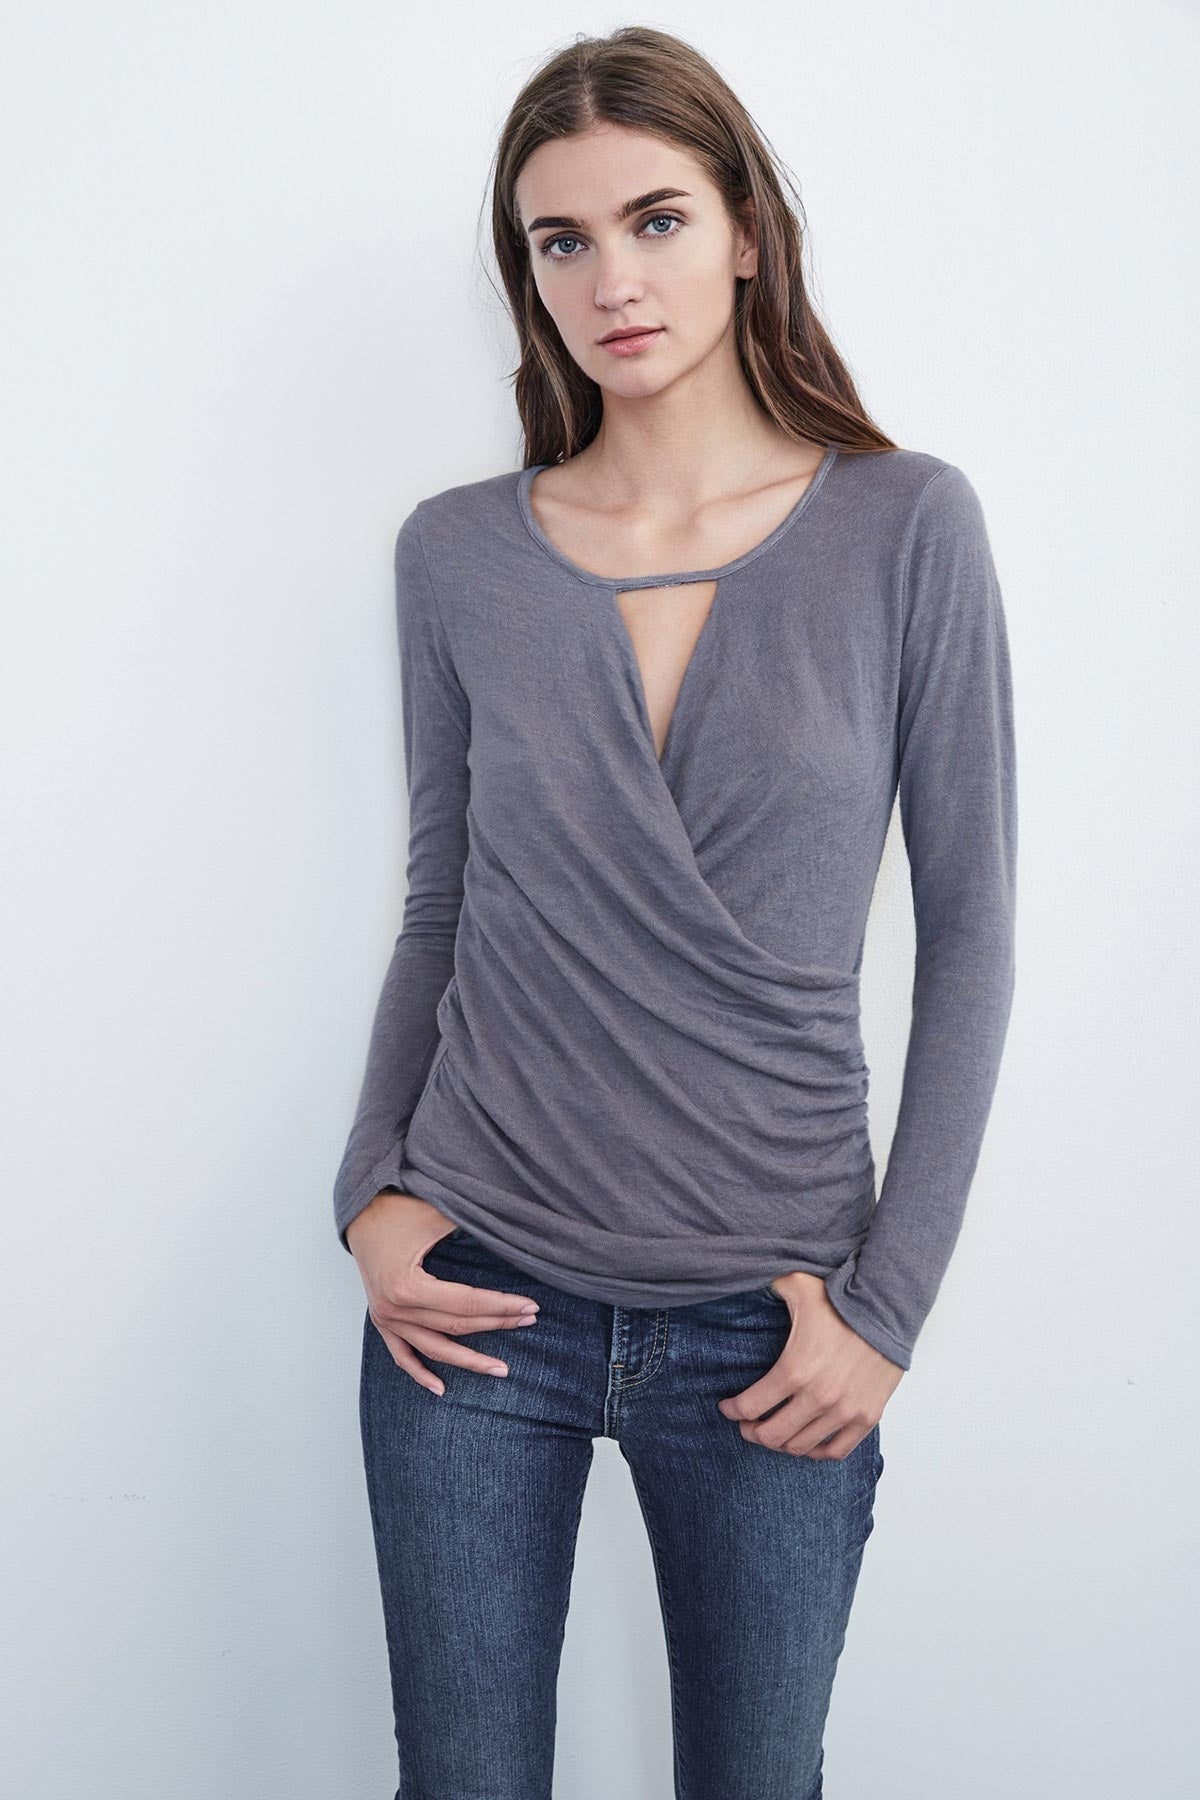 BRIDA TEXTURE KNIT WRAP TOP